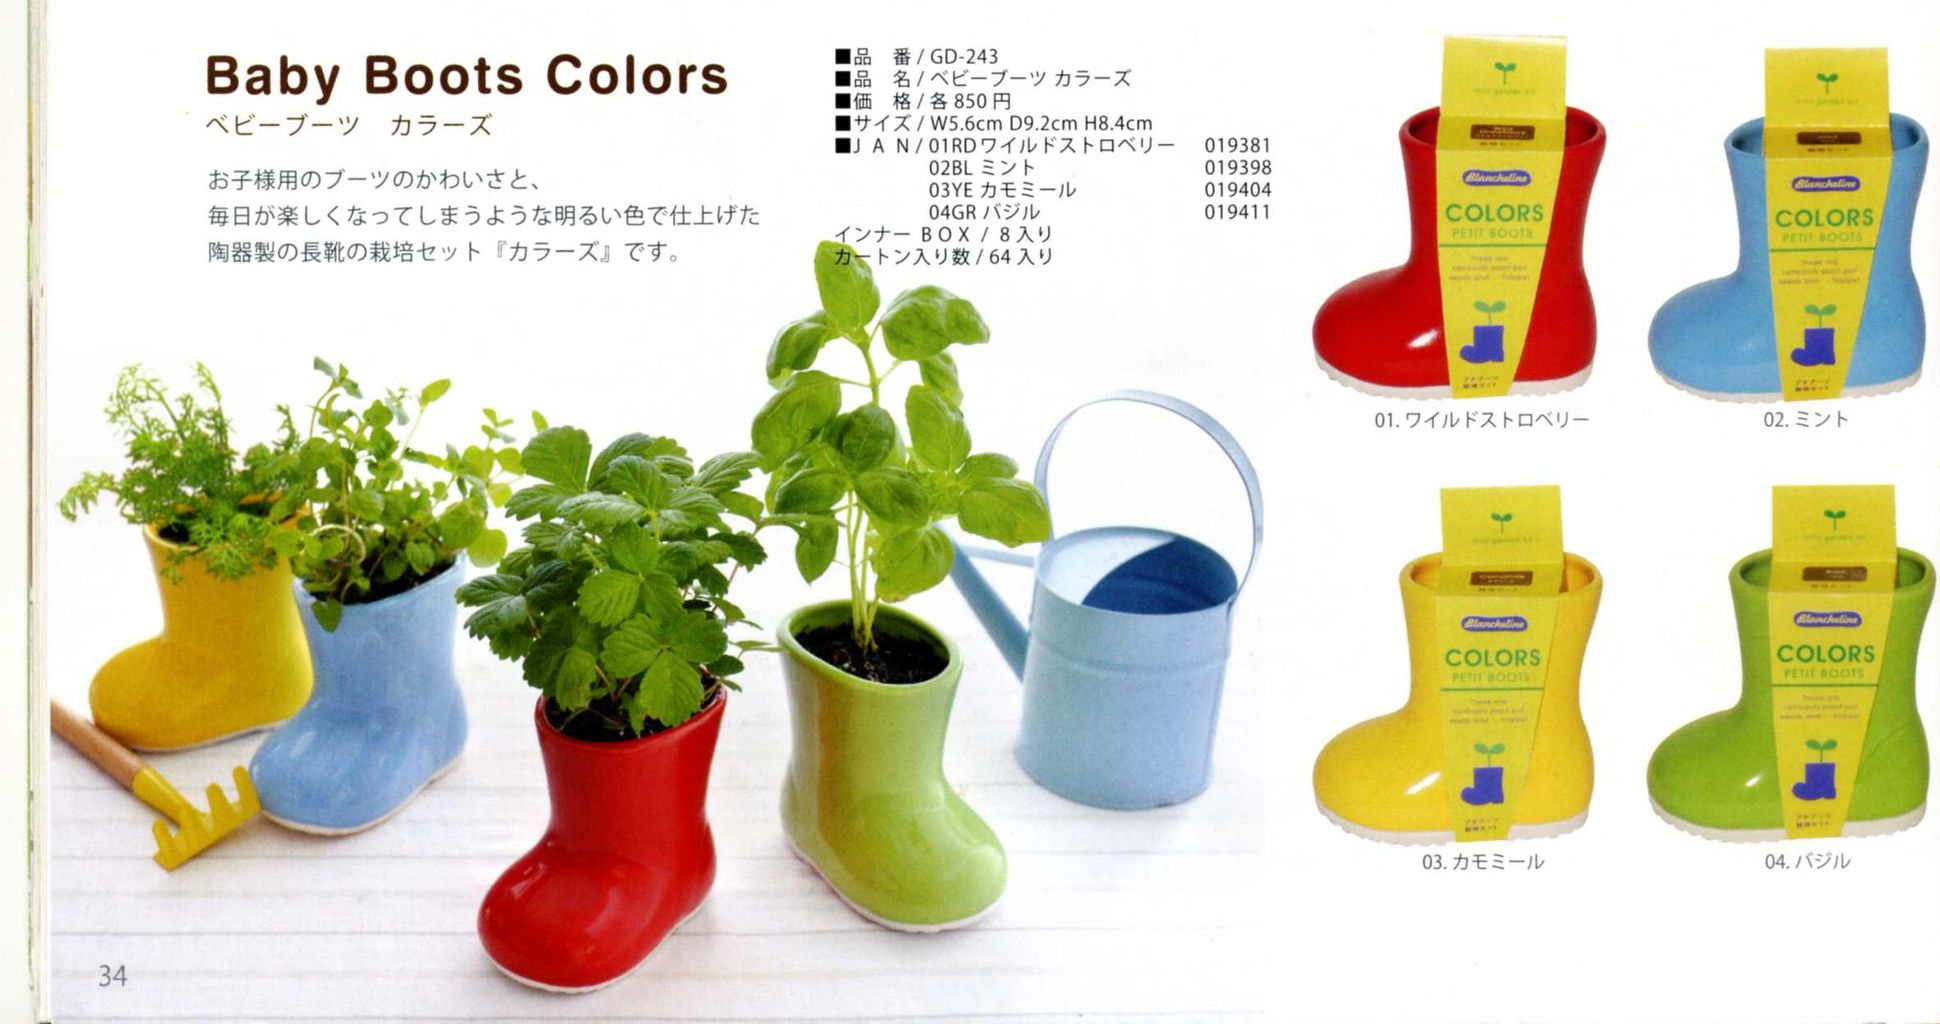 SEISHIN BOOTS COLORS CATALOGUE 013